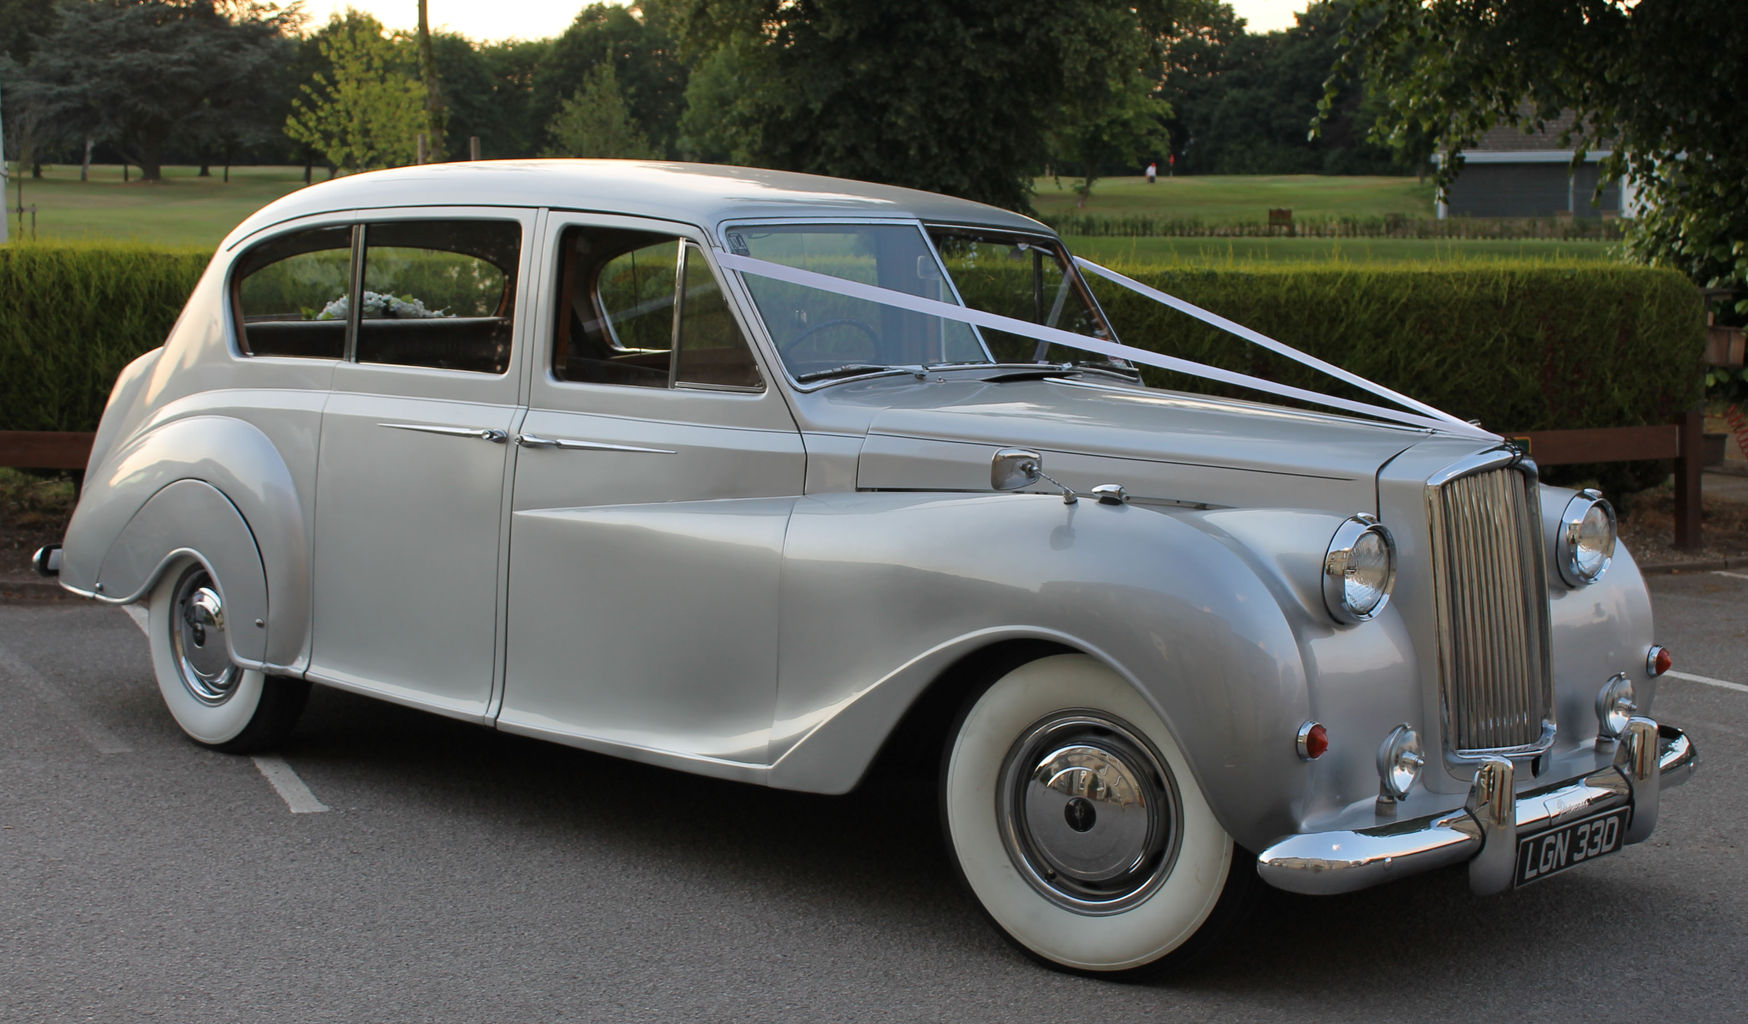 Pickering Wedding Cars Of Brough Classic Wedding Car Hire